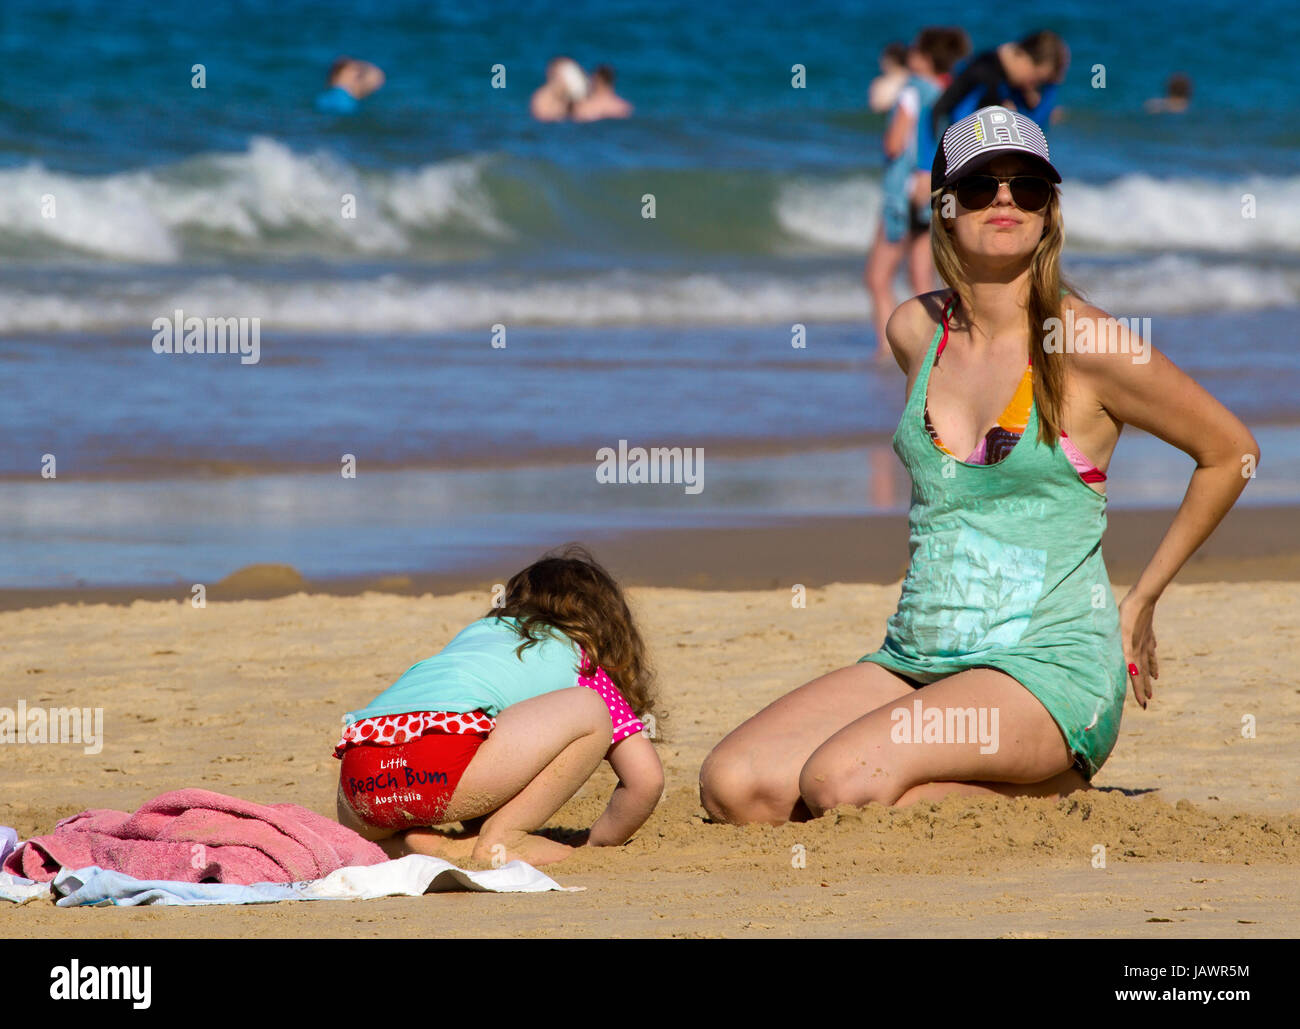 Candid photography shot in street, beach, parks and aother locations - Stock Image